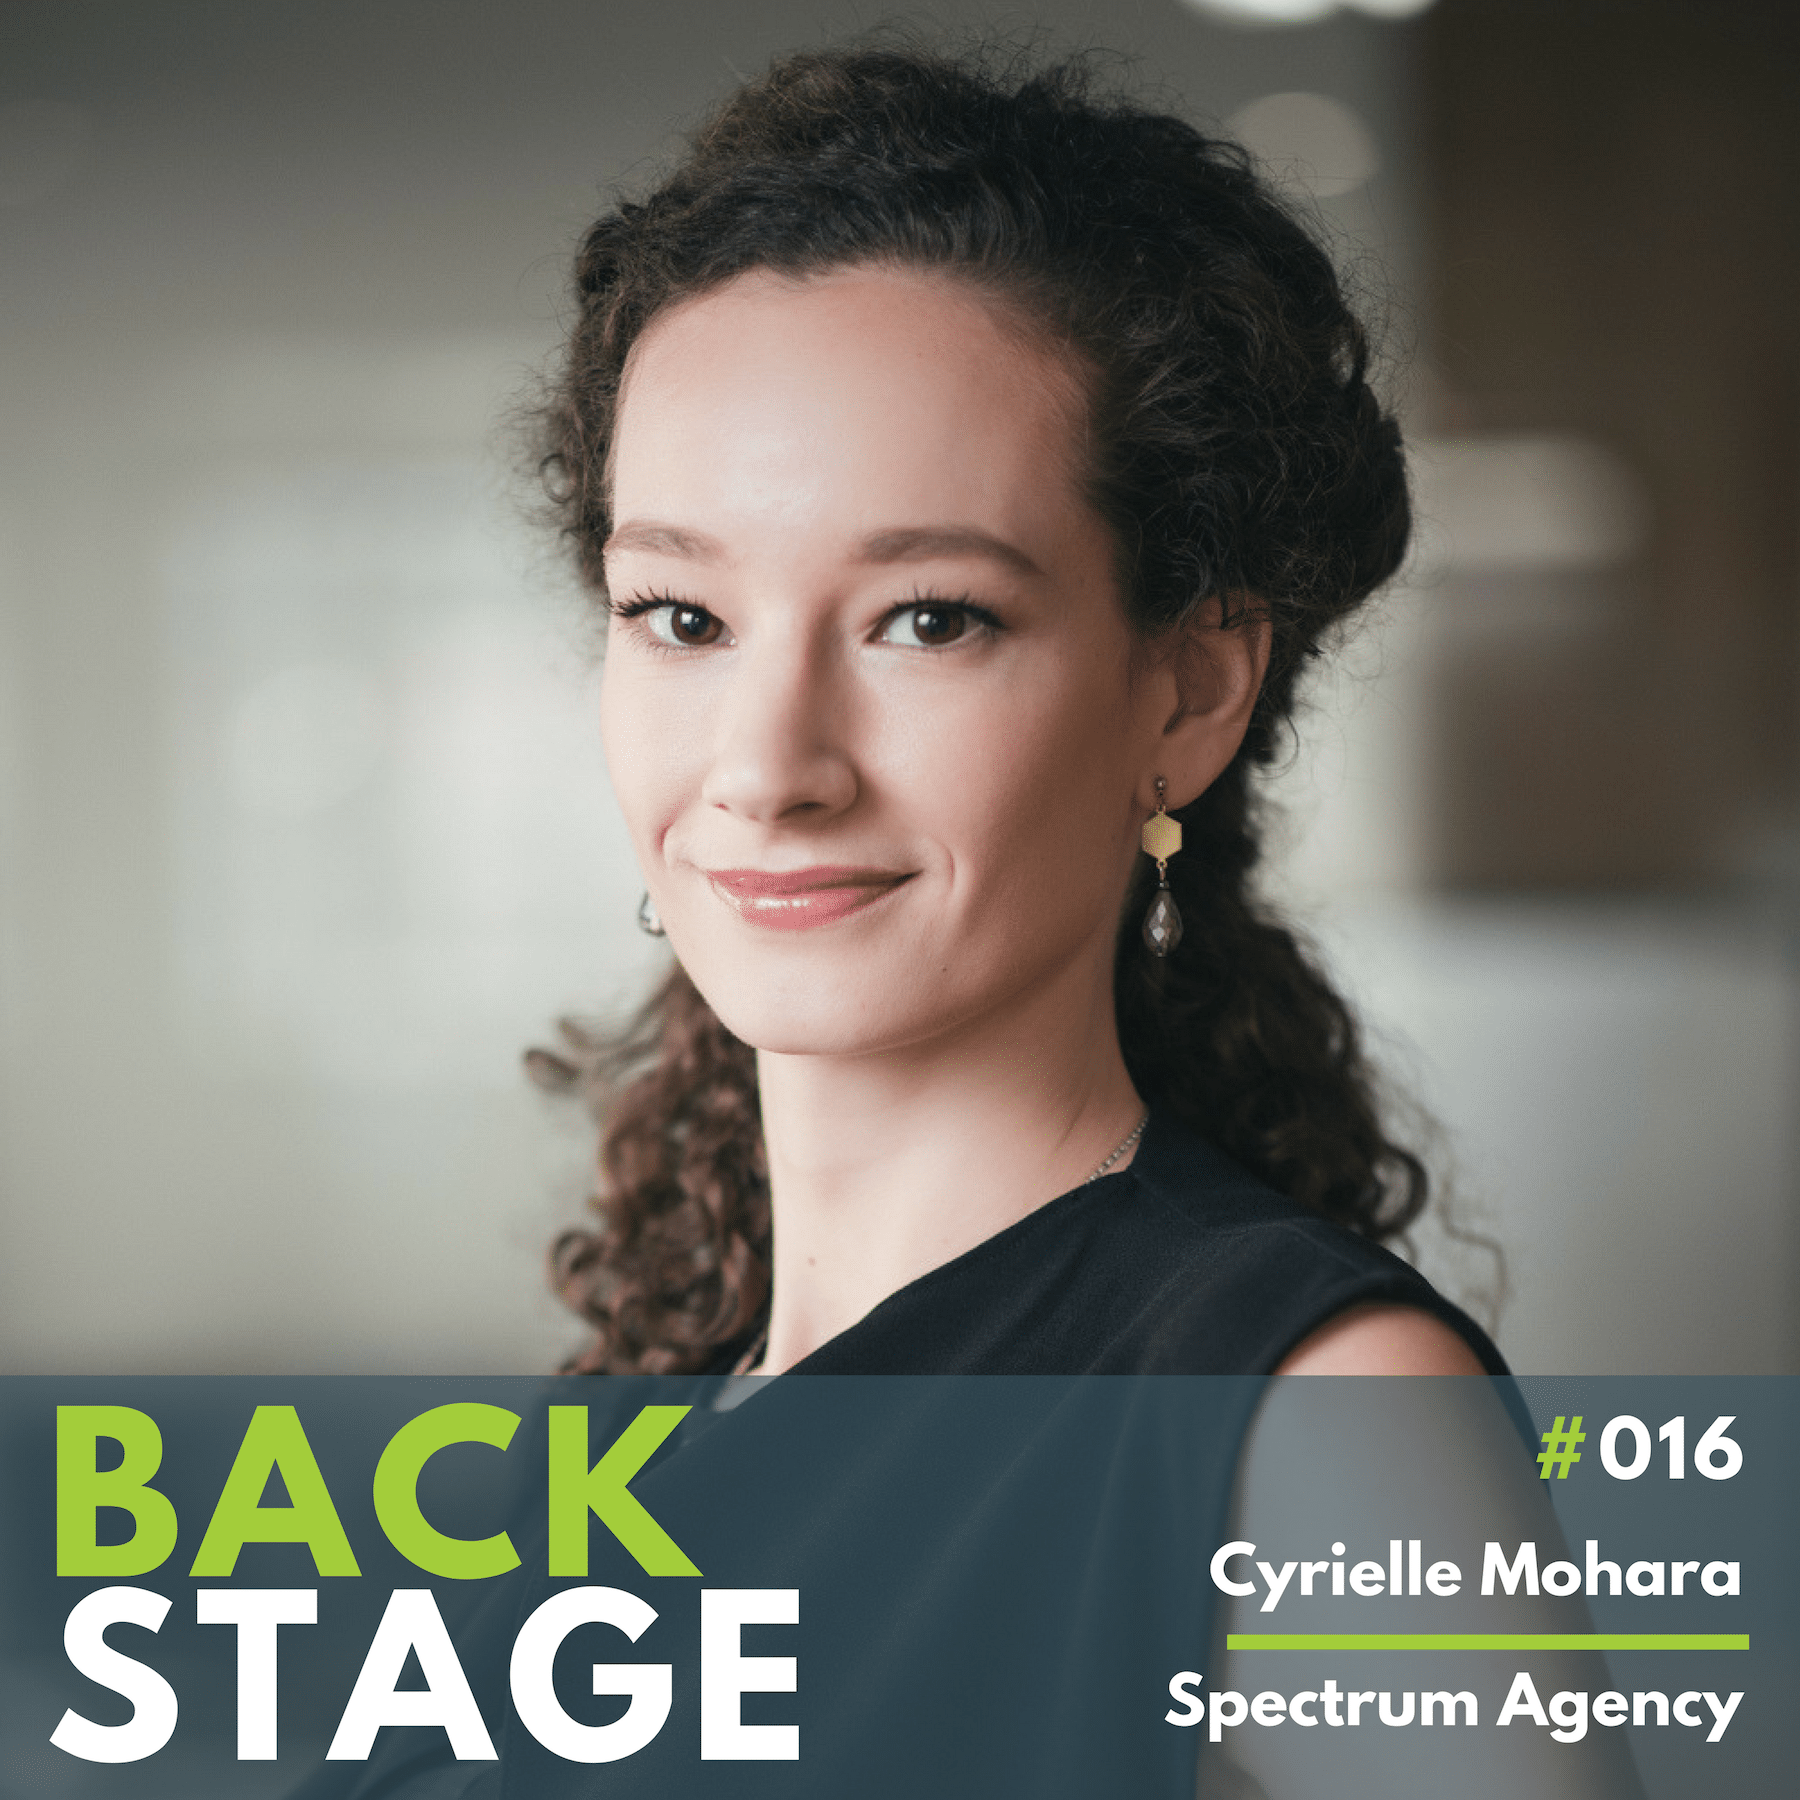 BACKSTAGE #016 - Cyrielle Mohara, Spectrum Agency Podcast